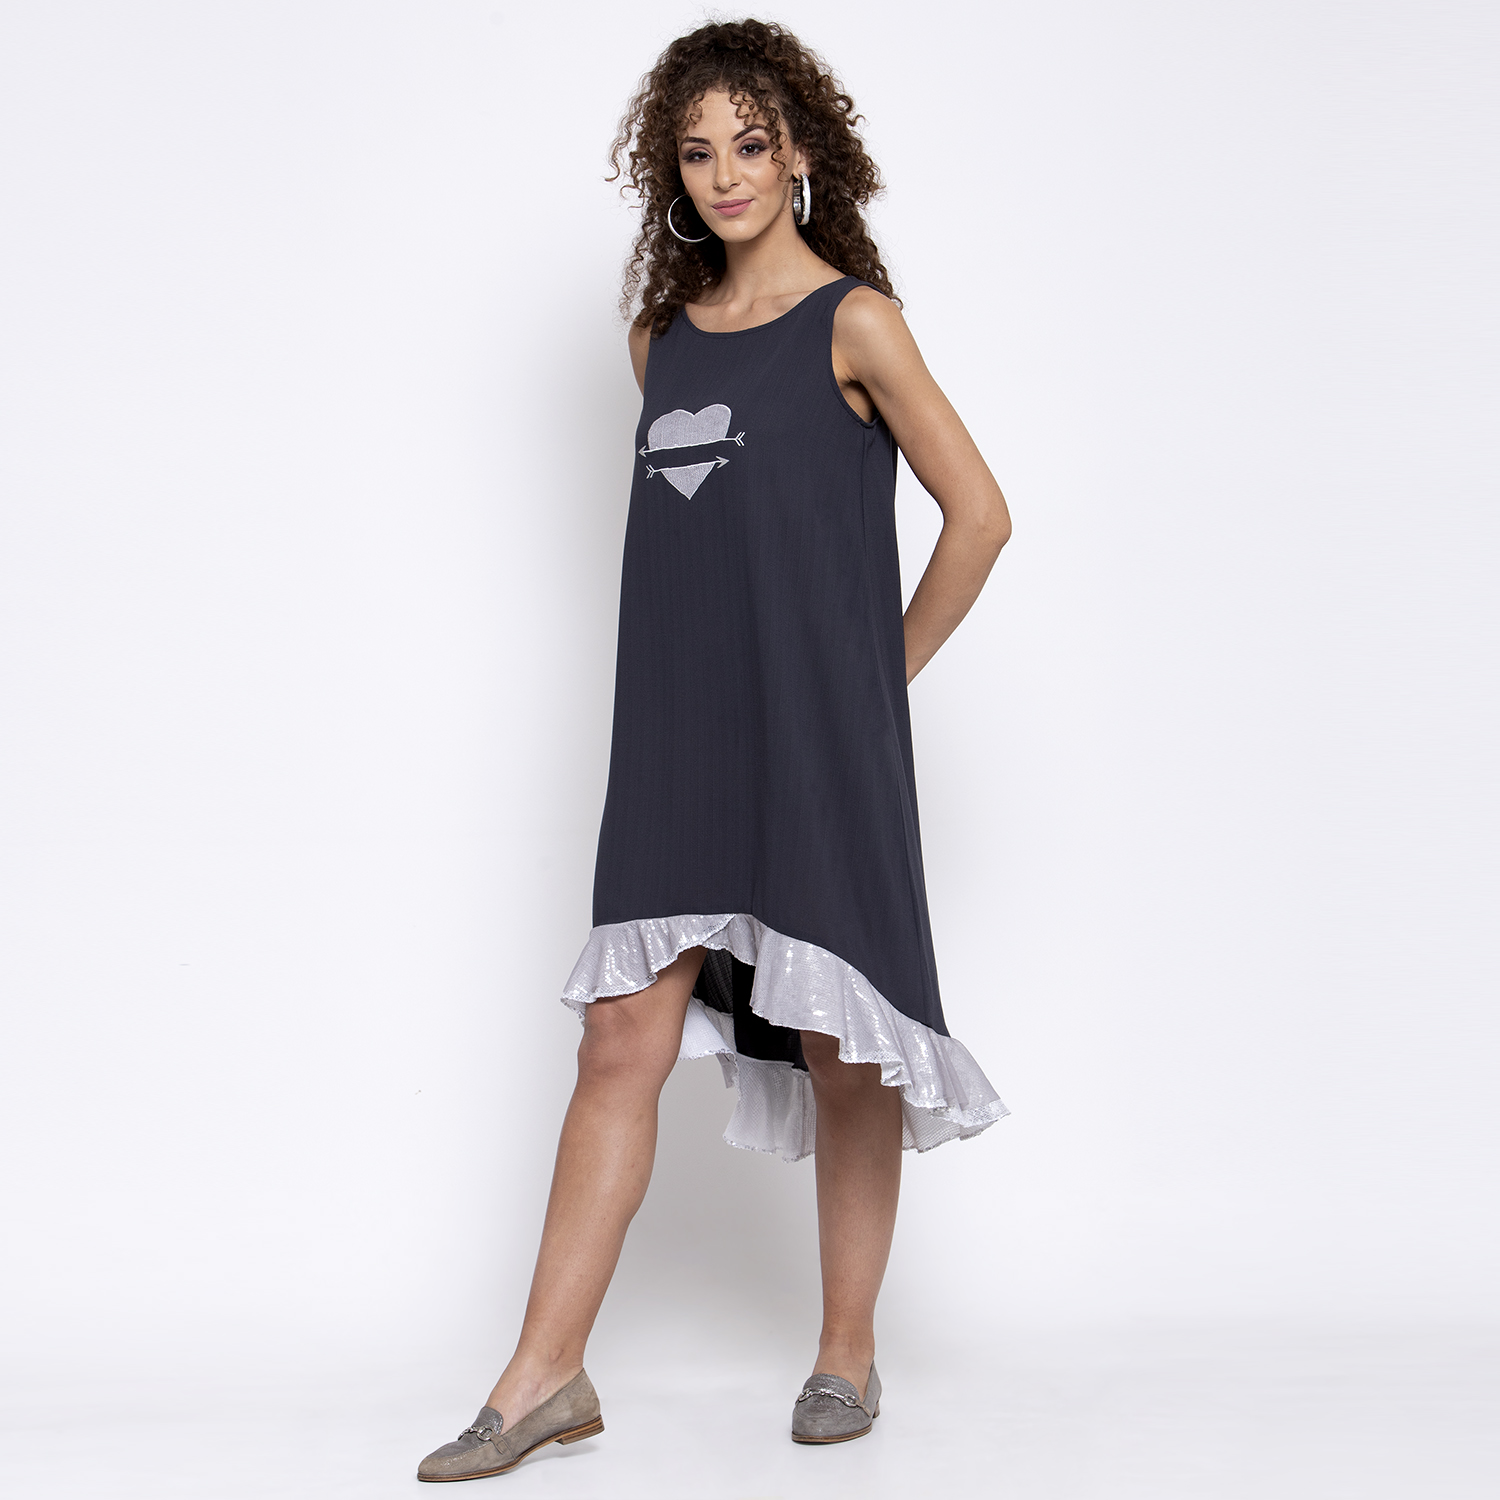 Grey dress with sequins frill and heart embroidery